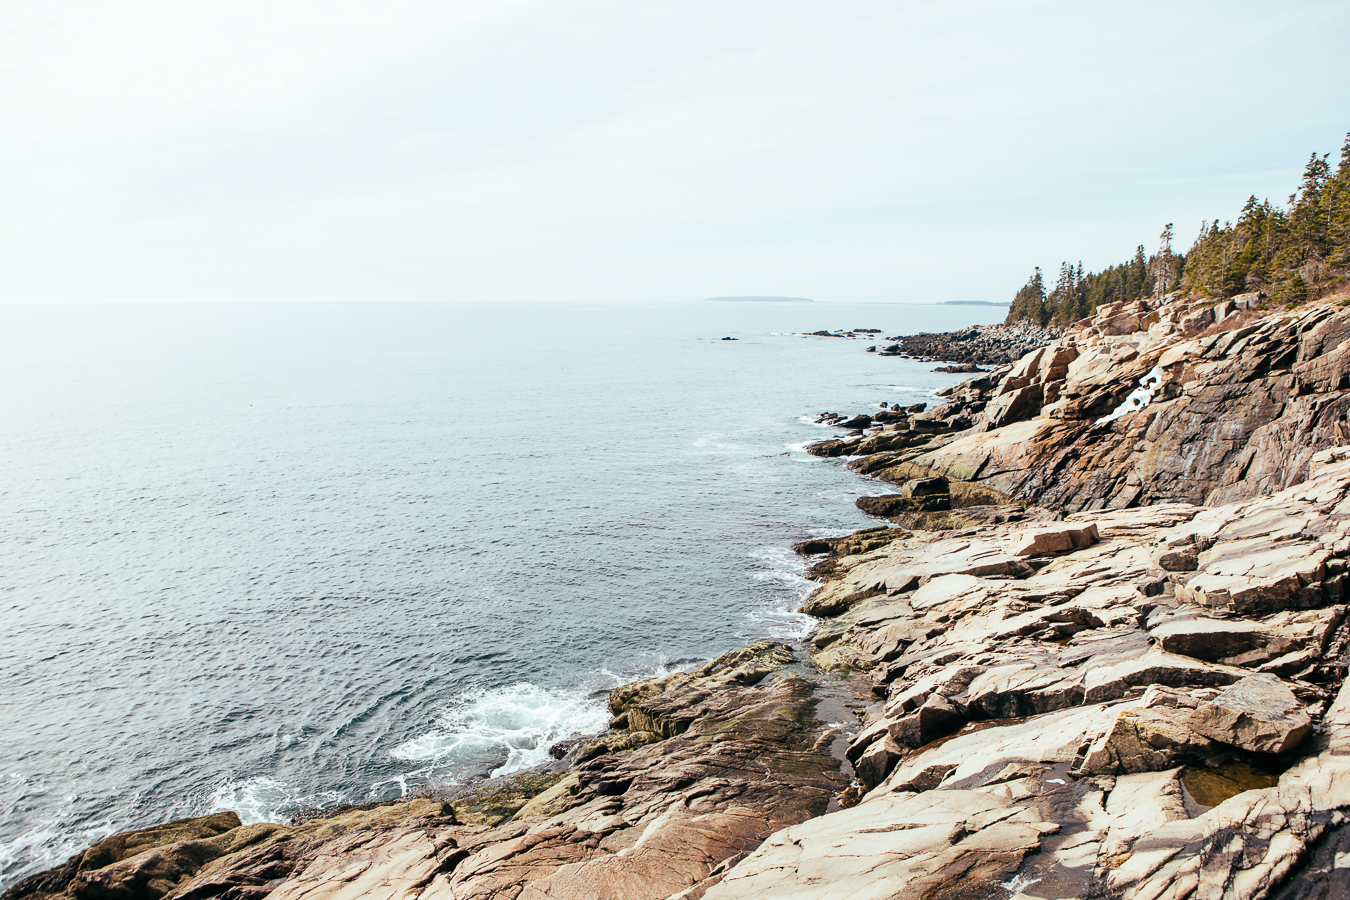 I hadn't planned on going further than Portland, butknew I wouldn't be seeing the ocean for a lone time so I made an impromptu nature trip to Acadia. It's gorgeous here, glad I went for it.